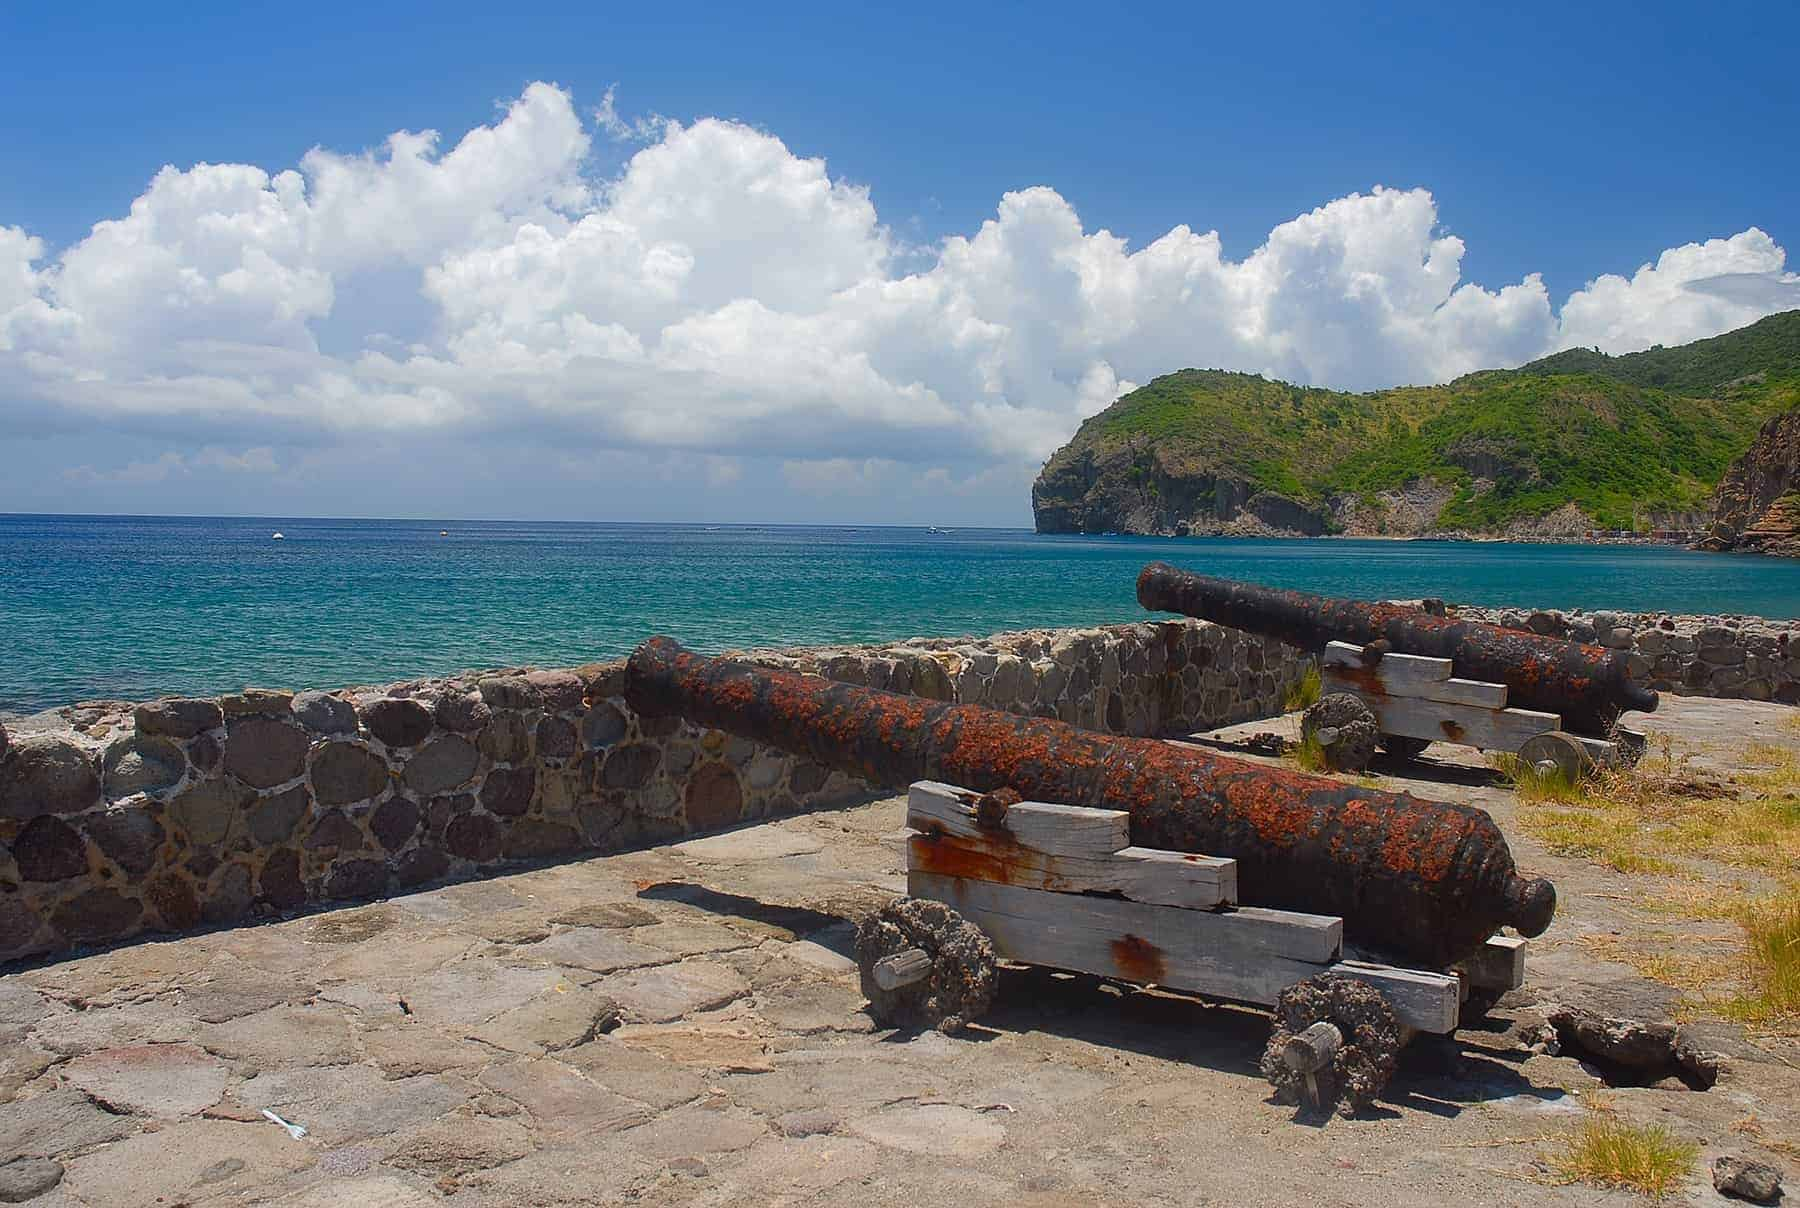 The cannons at Carrs Bay on the Caribbean island of Montserrat in the West Indies. Several cannons are aimed towards the smaller island of Redonda at the remnants of a fort which stood guard over Montserrat centuries ago.